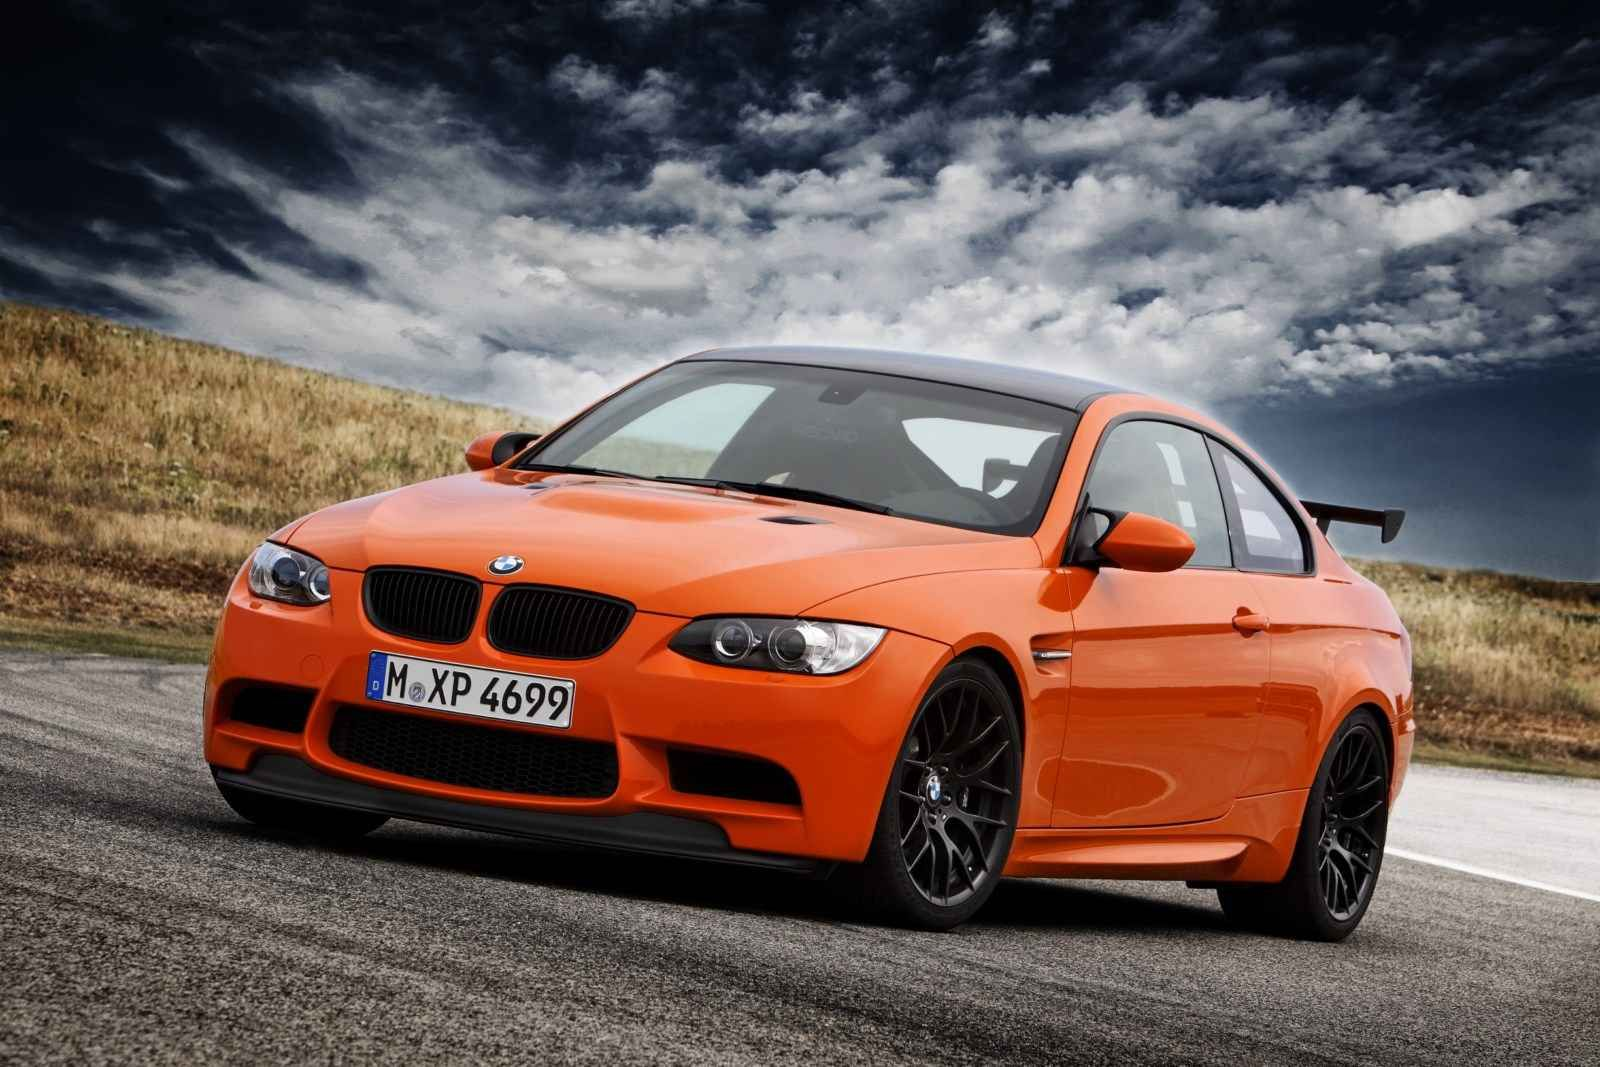 2011 Bmw M3 Gts For Sale On Ebay Bmw M3 Bmw Bmw M3 Wallpaper